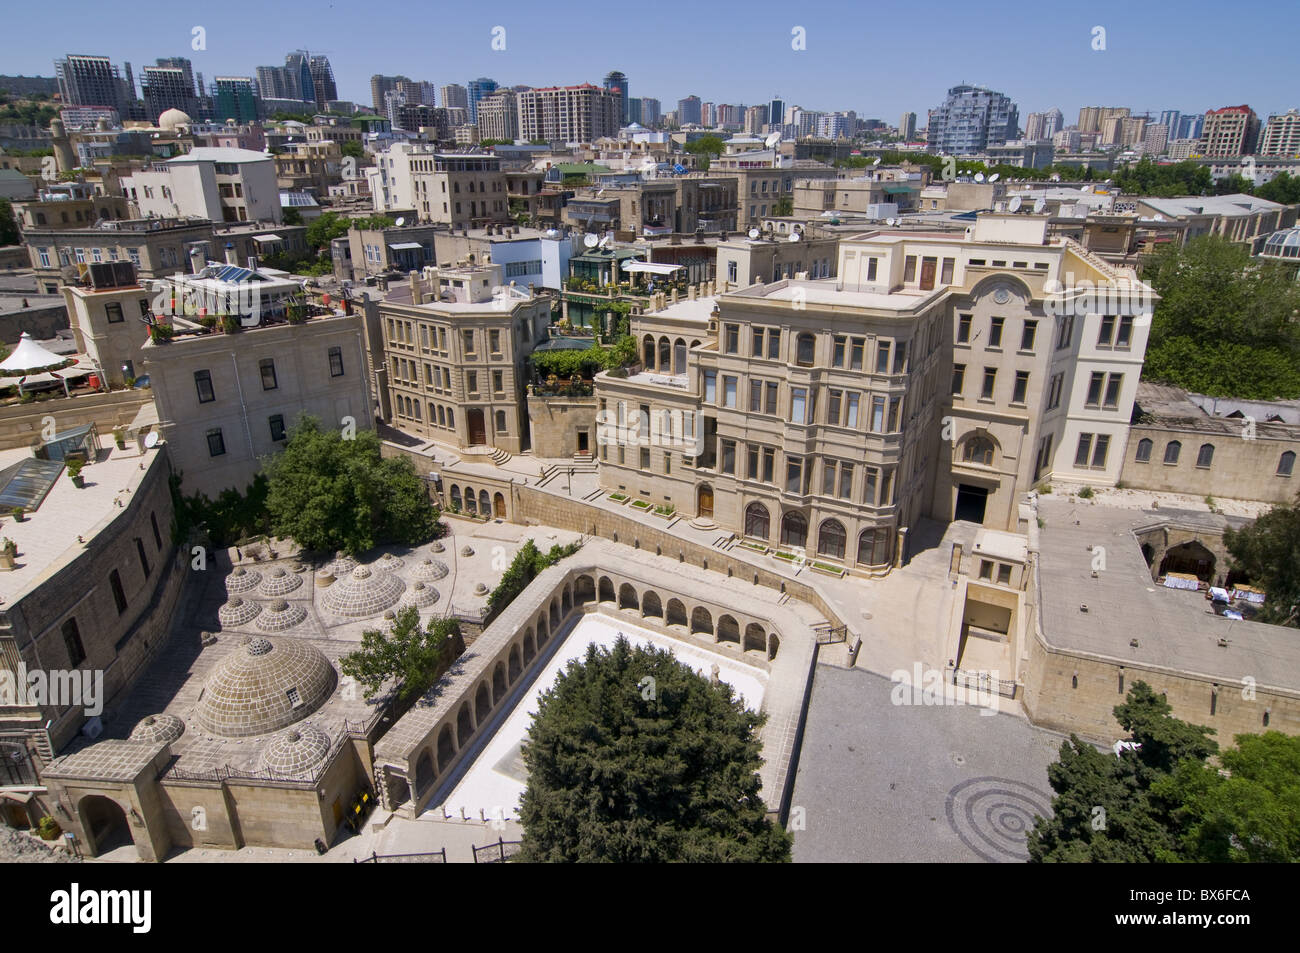 View from the Maiden Tower over the Old City of Baku, UNESCO World Heritage Site, Azerbaijan, Central Asia, Asia - Stock Image